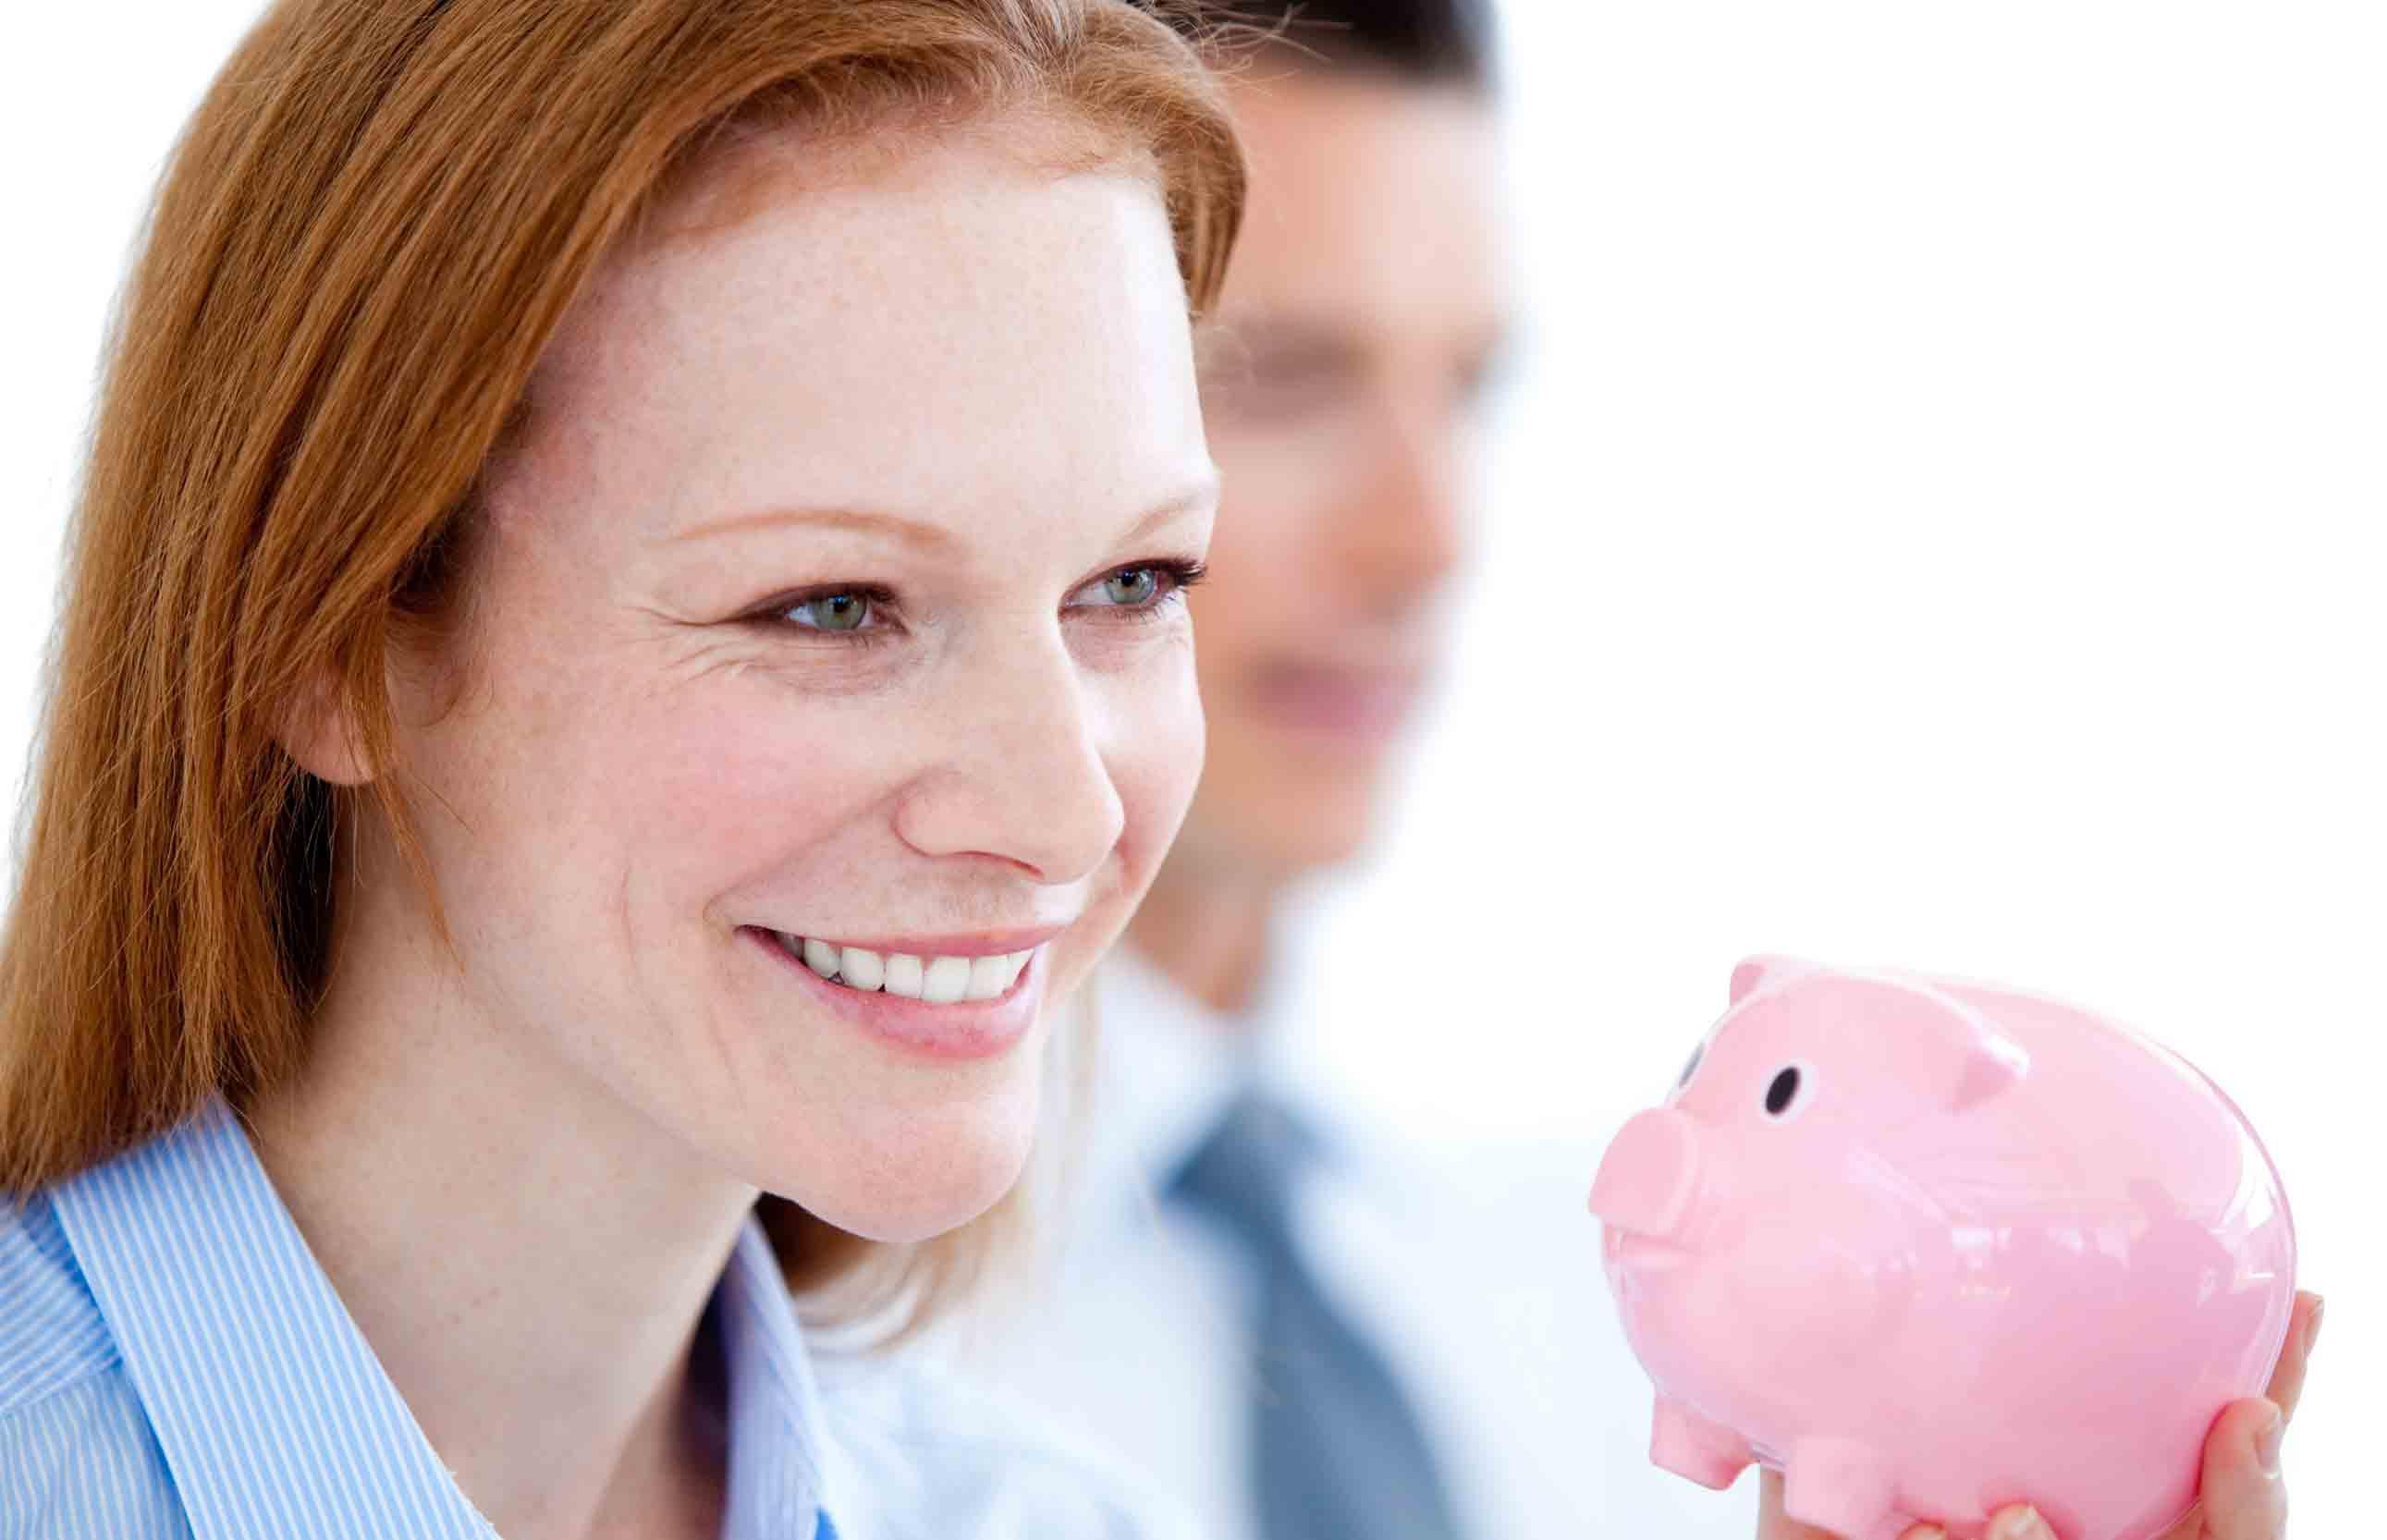 Making That Last Loan Payment: What You Need to Know